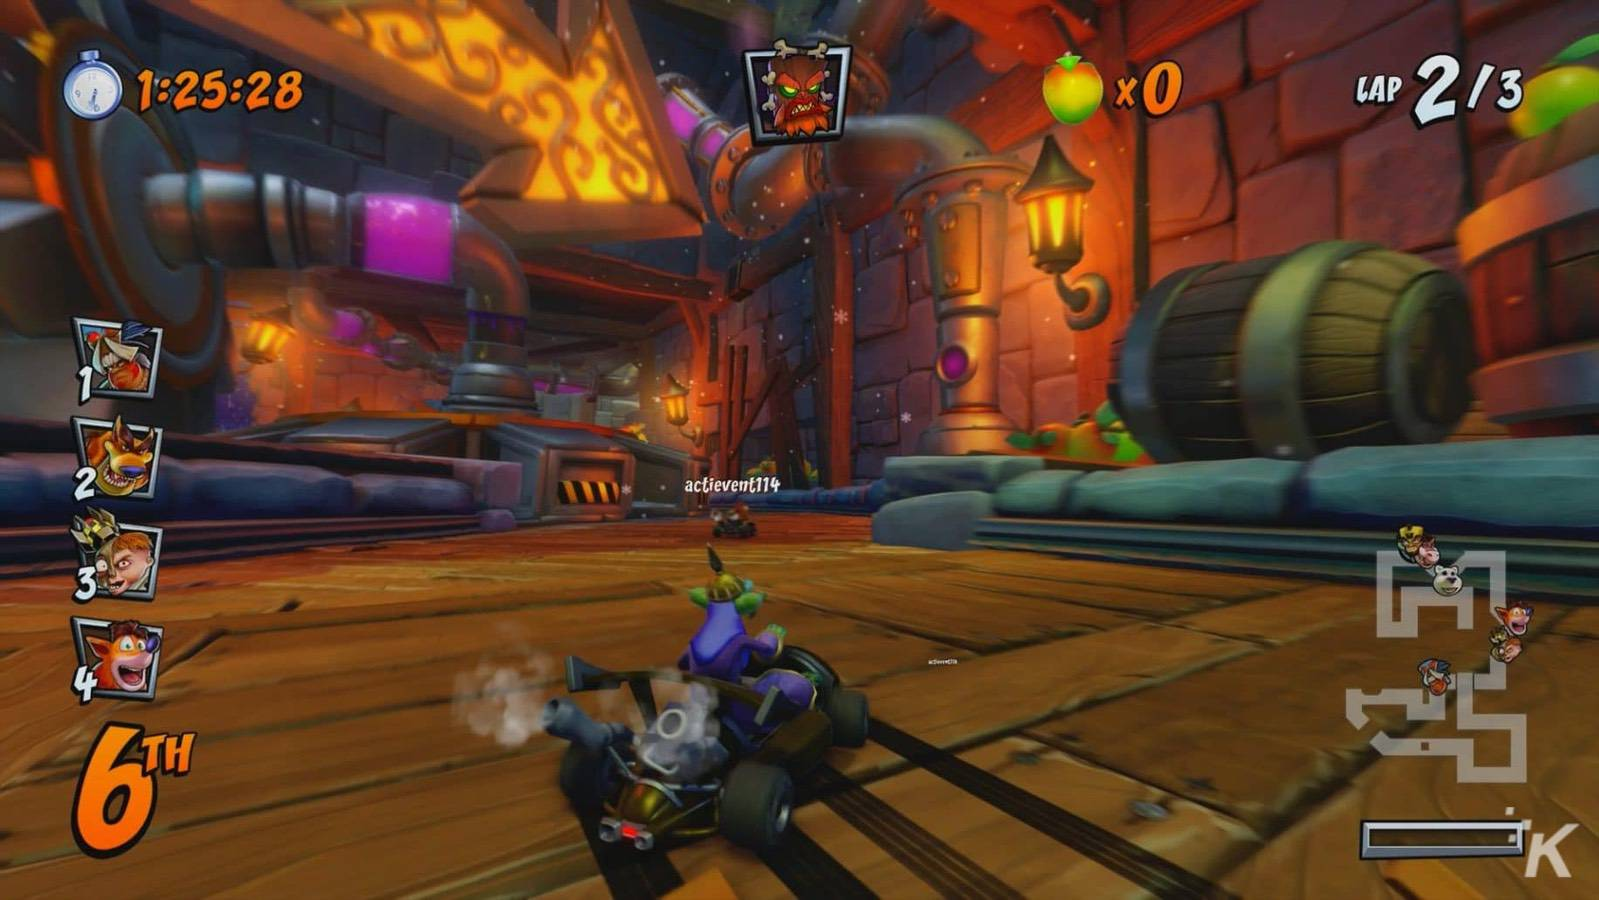 Crash Team Racing: Nitro Fueled may be the Dark Souls of kart racers